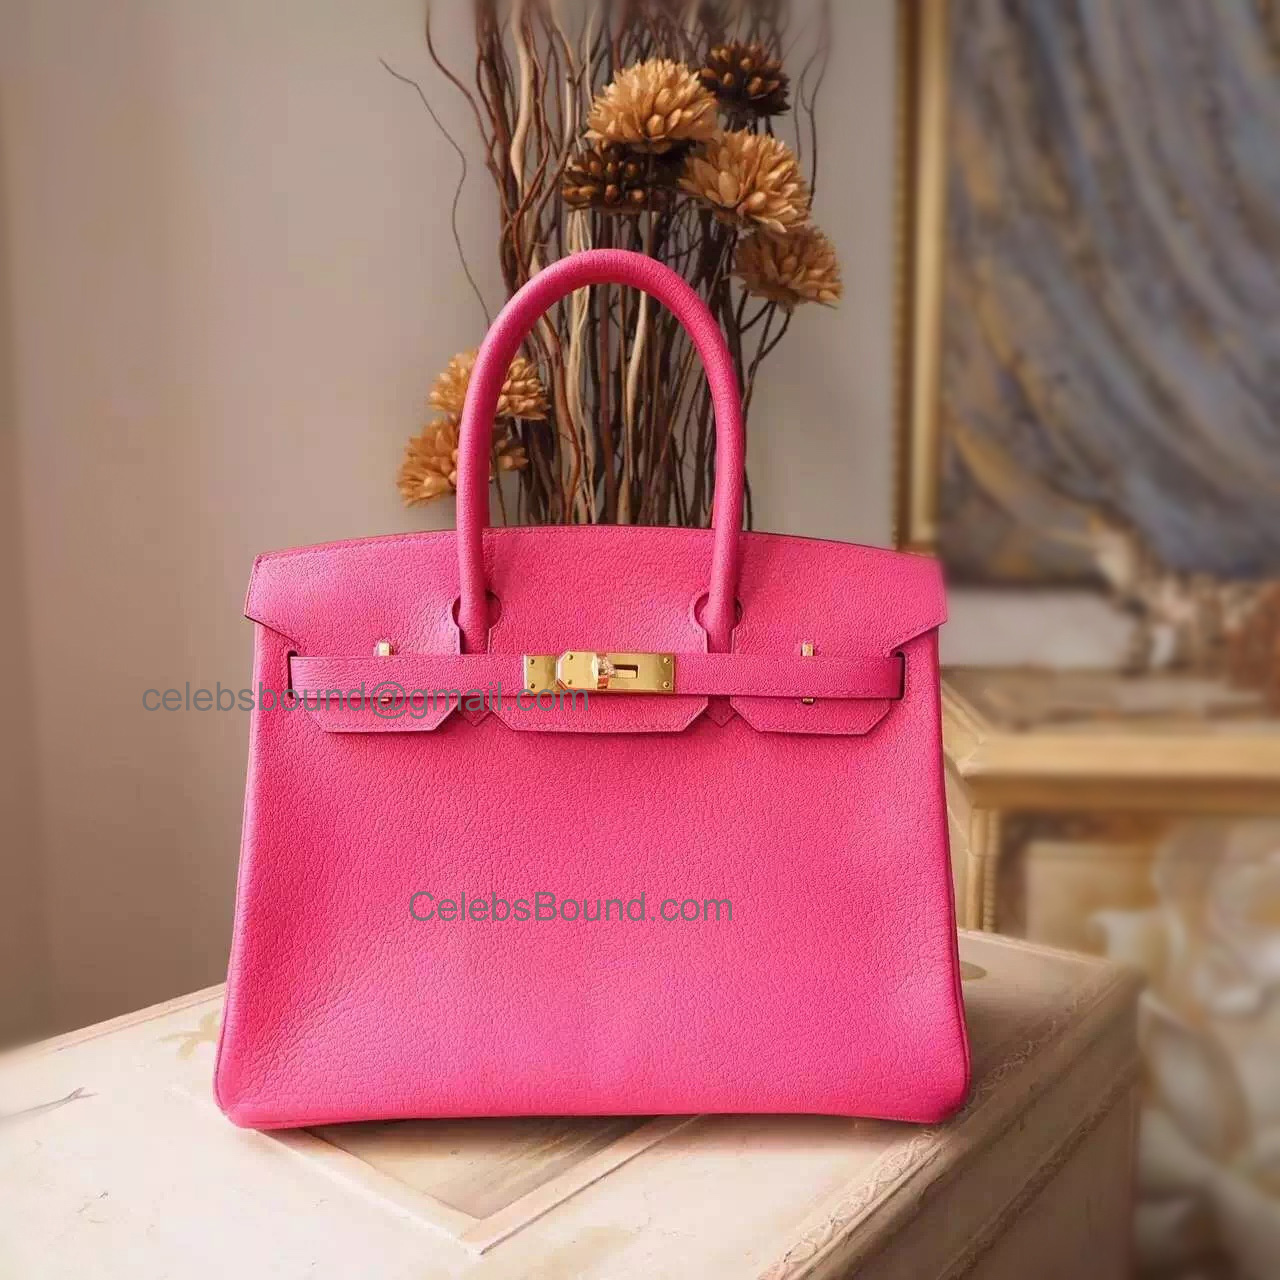 Handstitched Hermes Birkin 30 Bag in 5r Rose Shocking Chevere Myzore Goatskin GHW